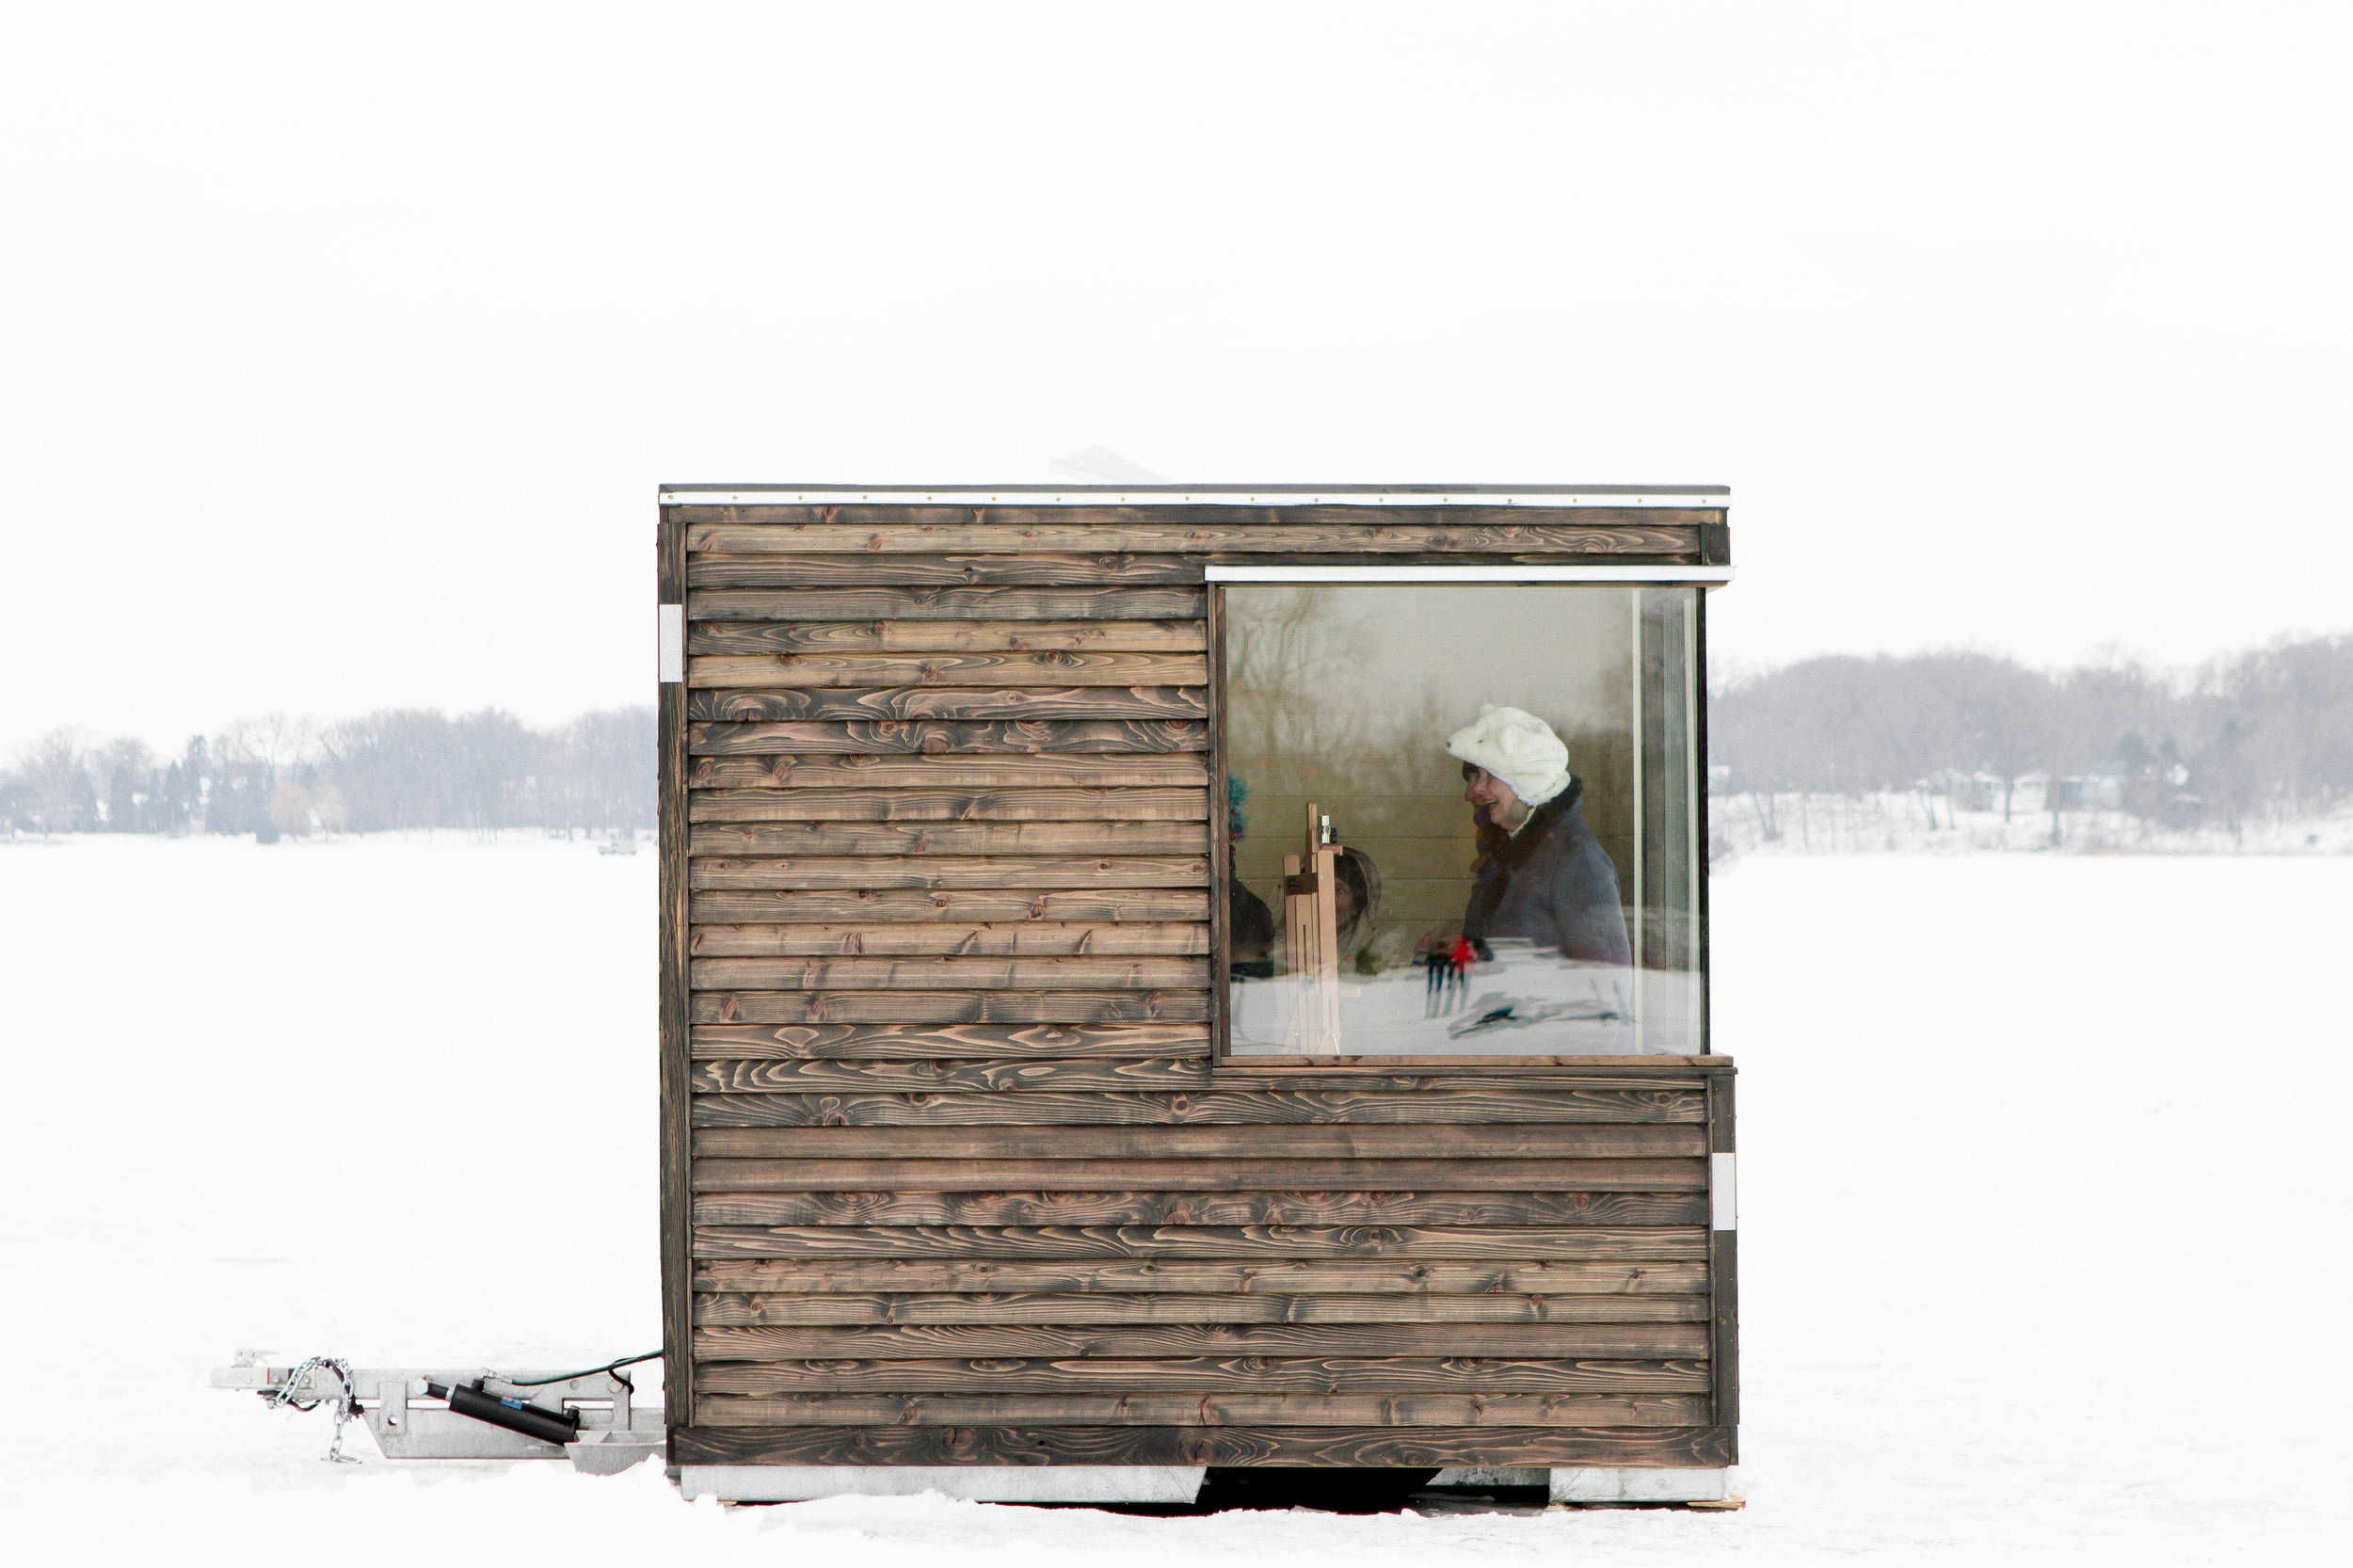 Exterior view shows an artist working inside the art shanty designed by NewStudio Architecture